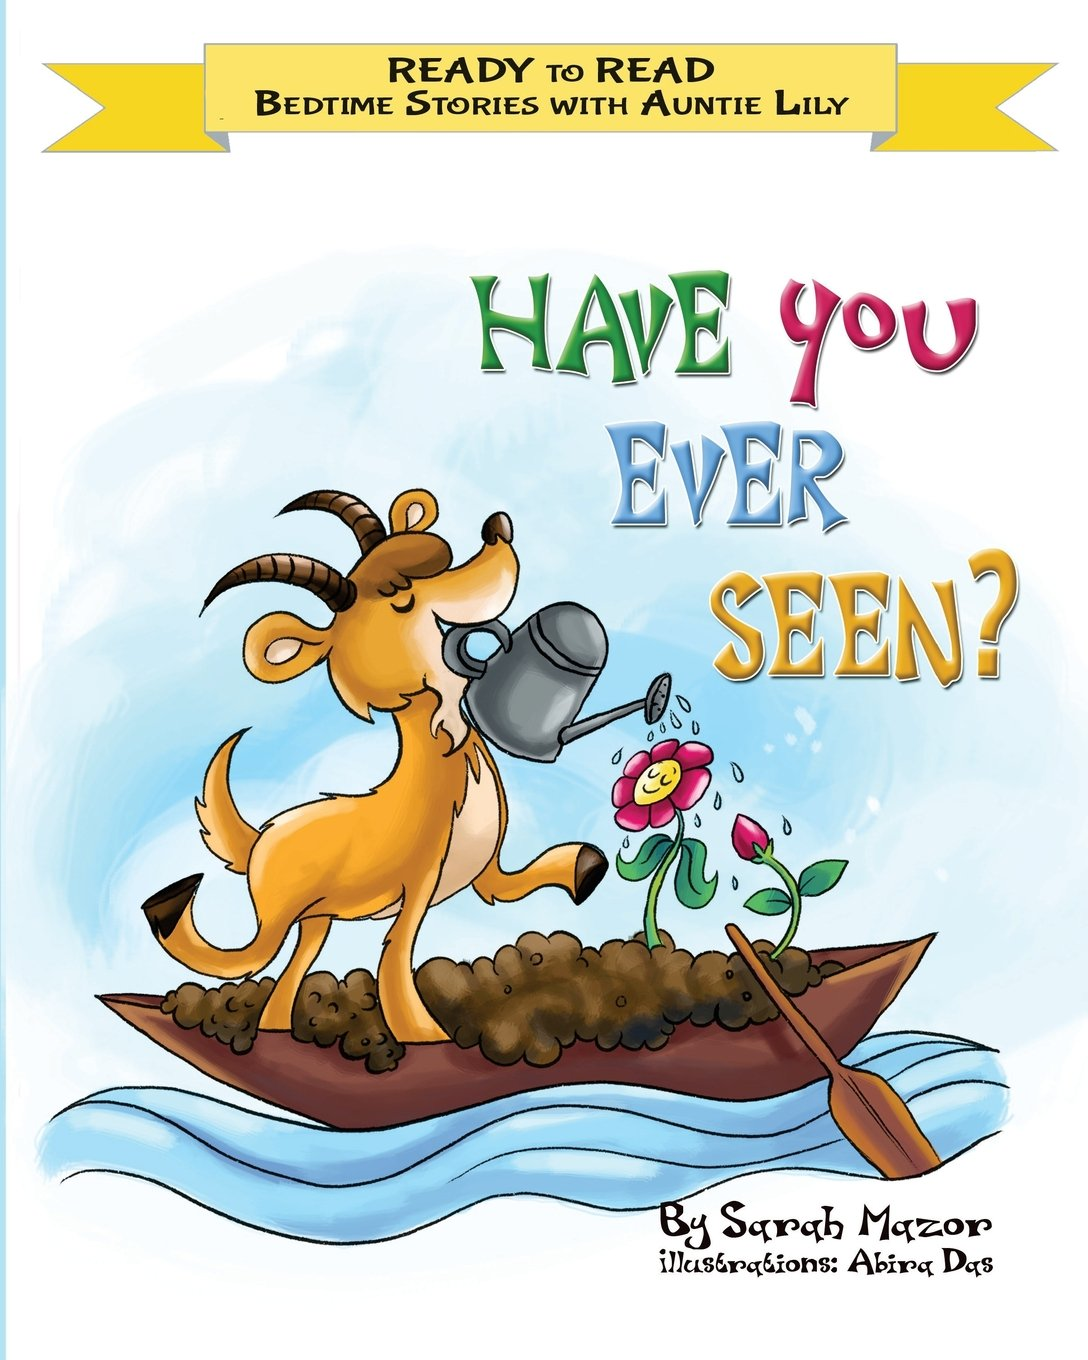 Download Have You Ever Seen?: Help Kids Go to Sleep With a Smile (READY TO READ - bedtime stories children's picture books) (Volume 1) ebook